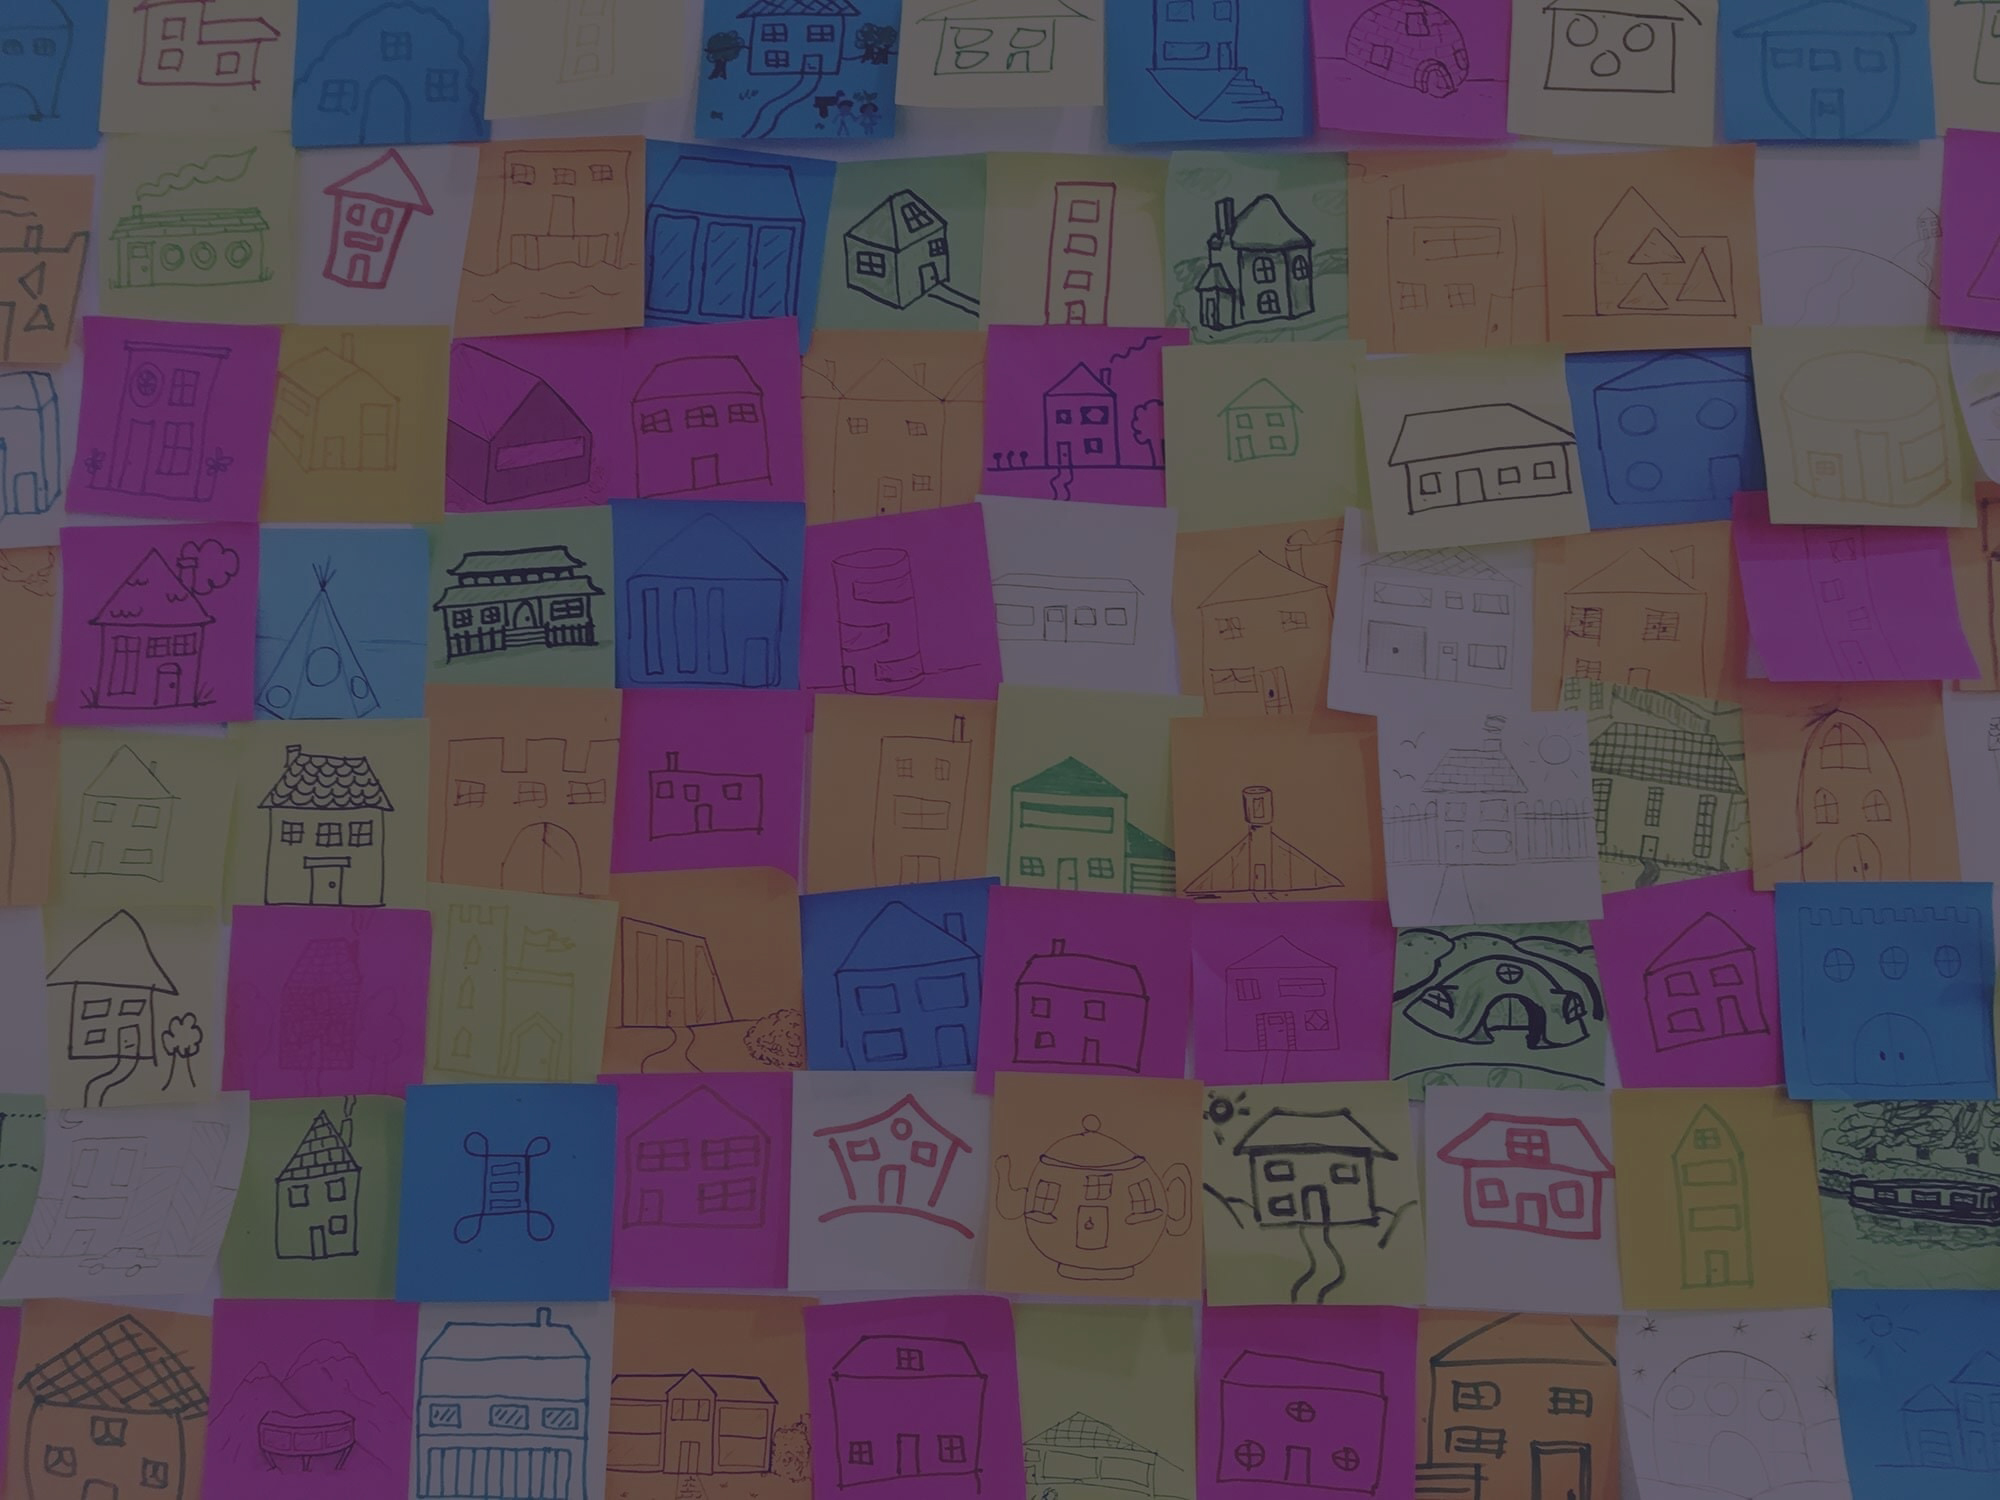 Houses drawn on post-its